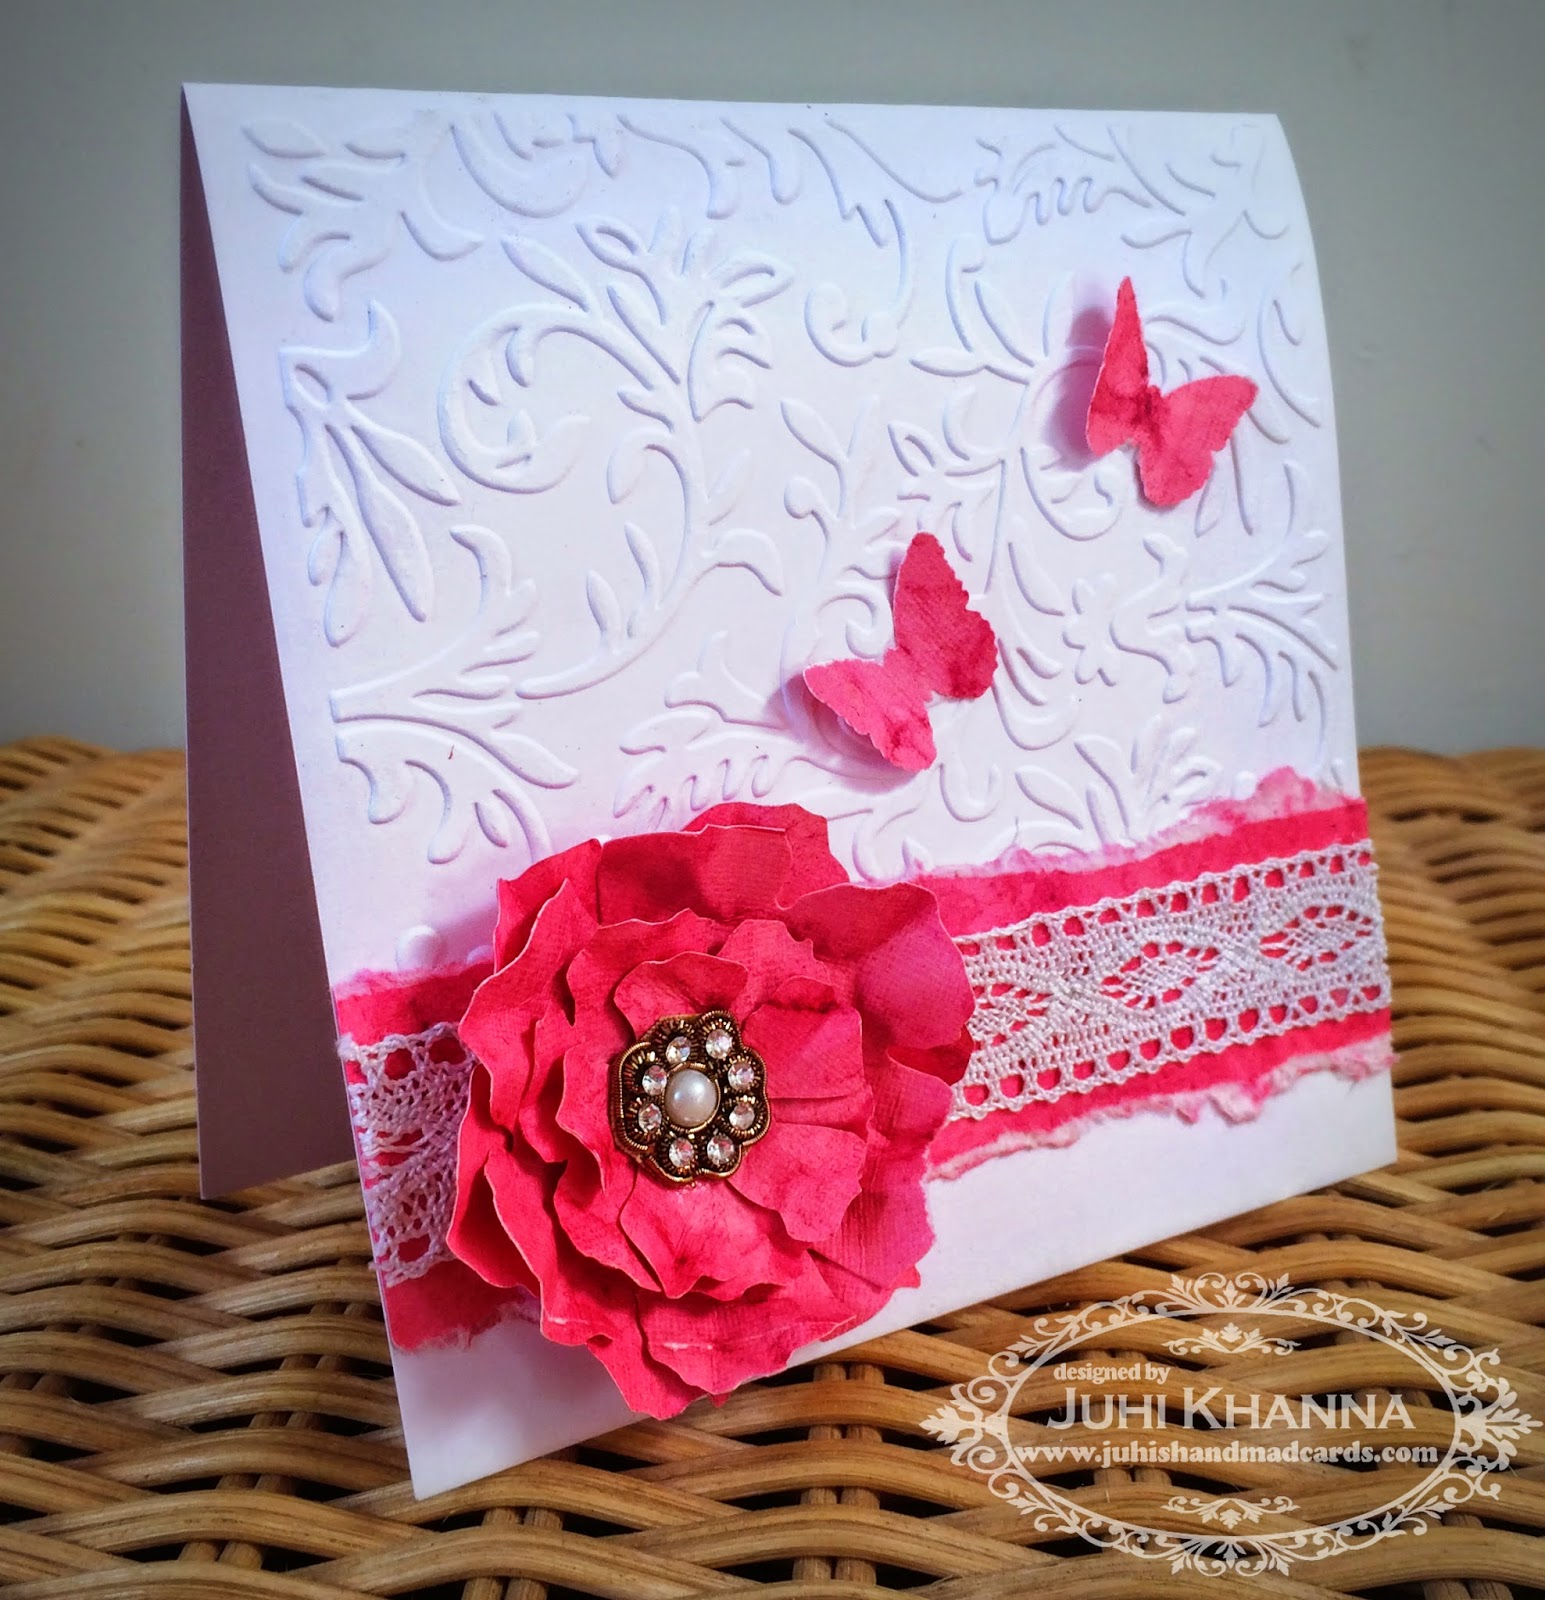 Handmade anniversary cards for indian parents www for Anniversary craft ideas for parents